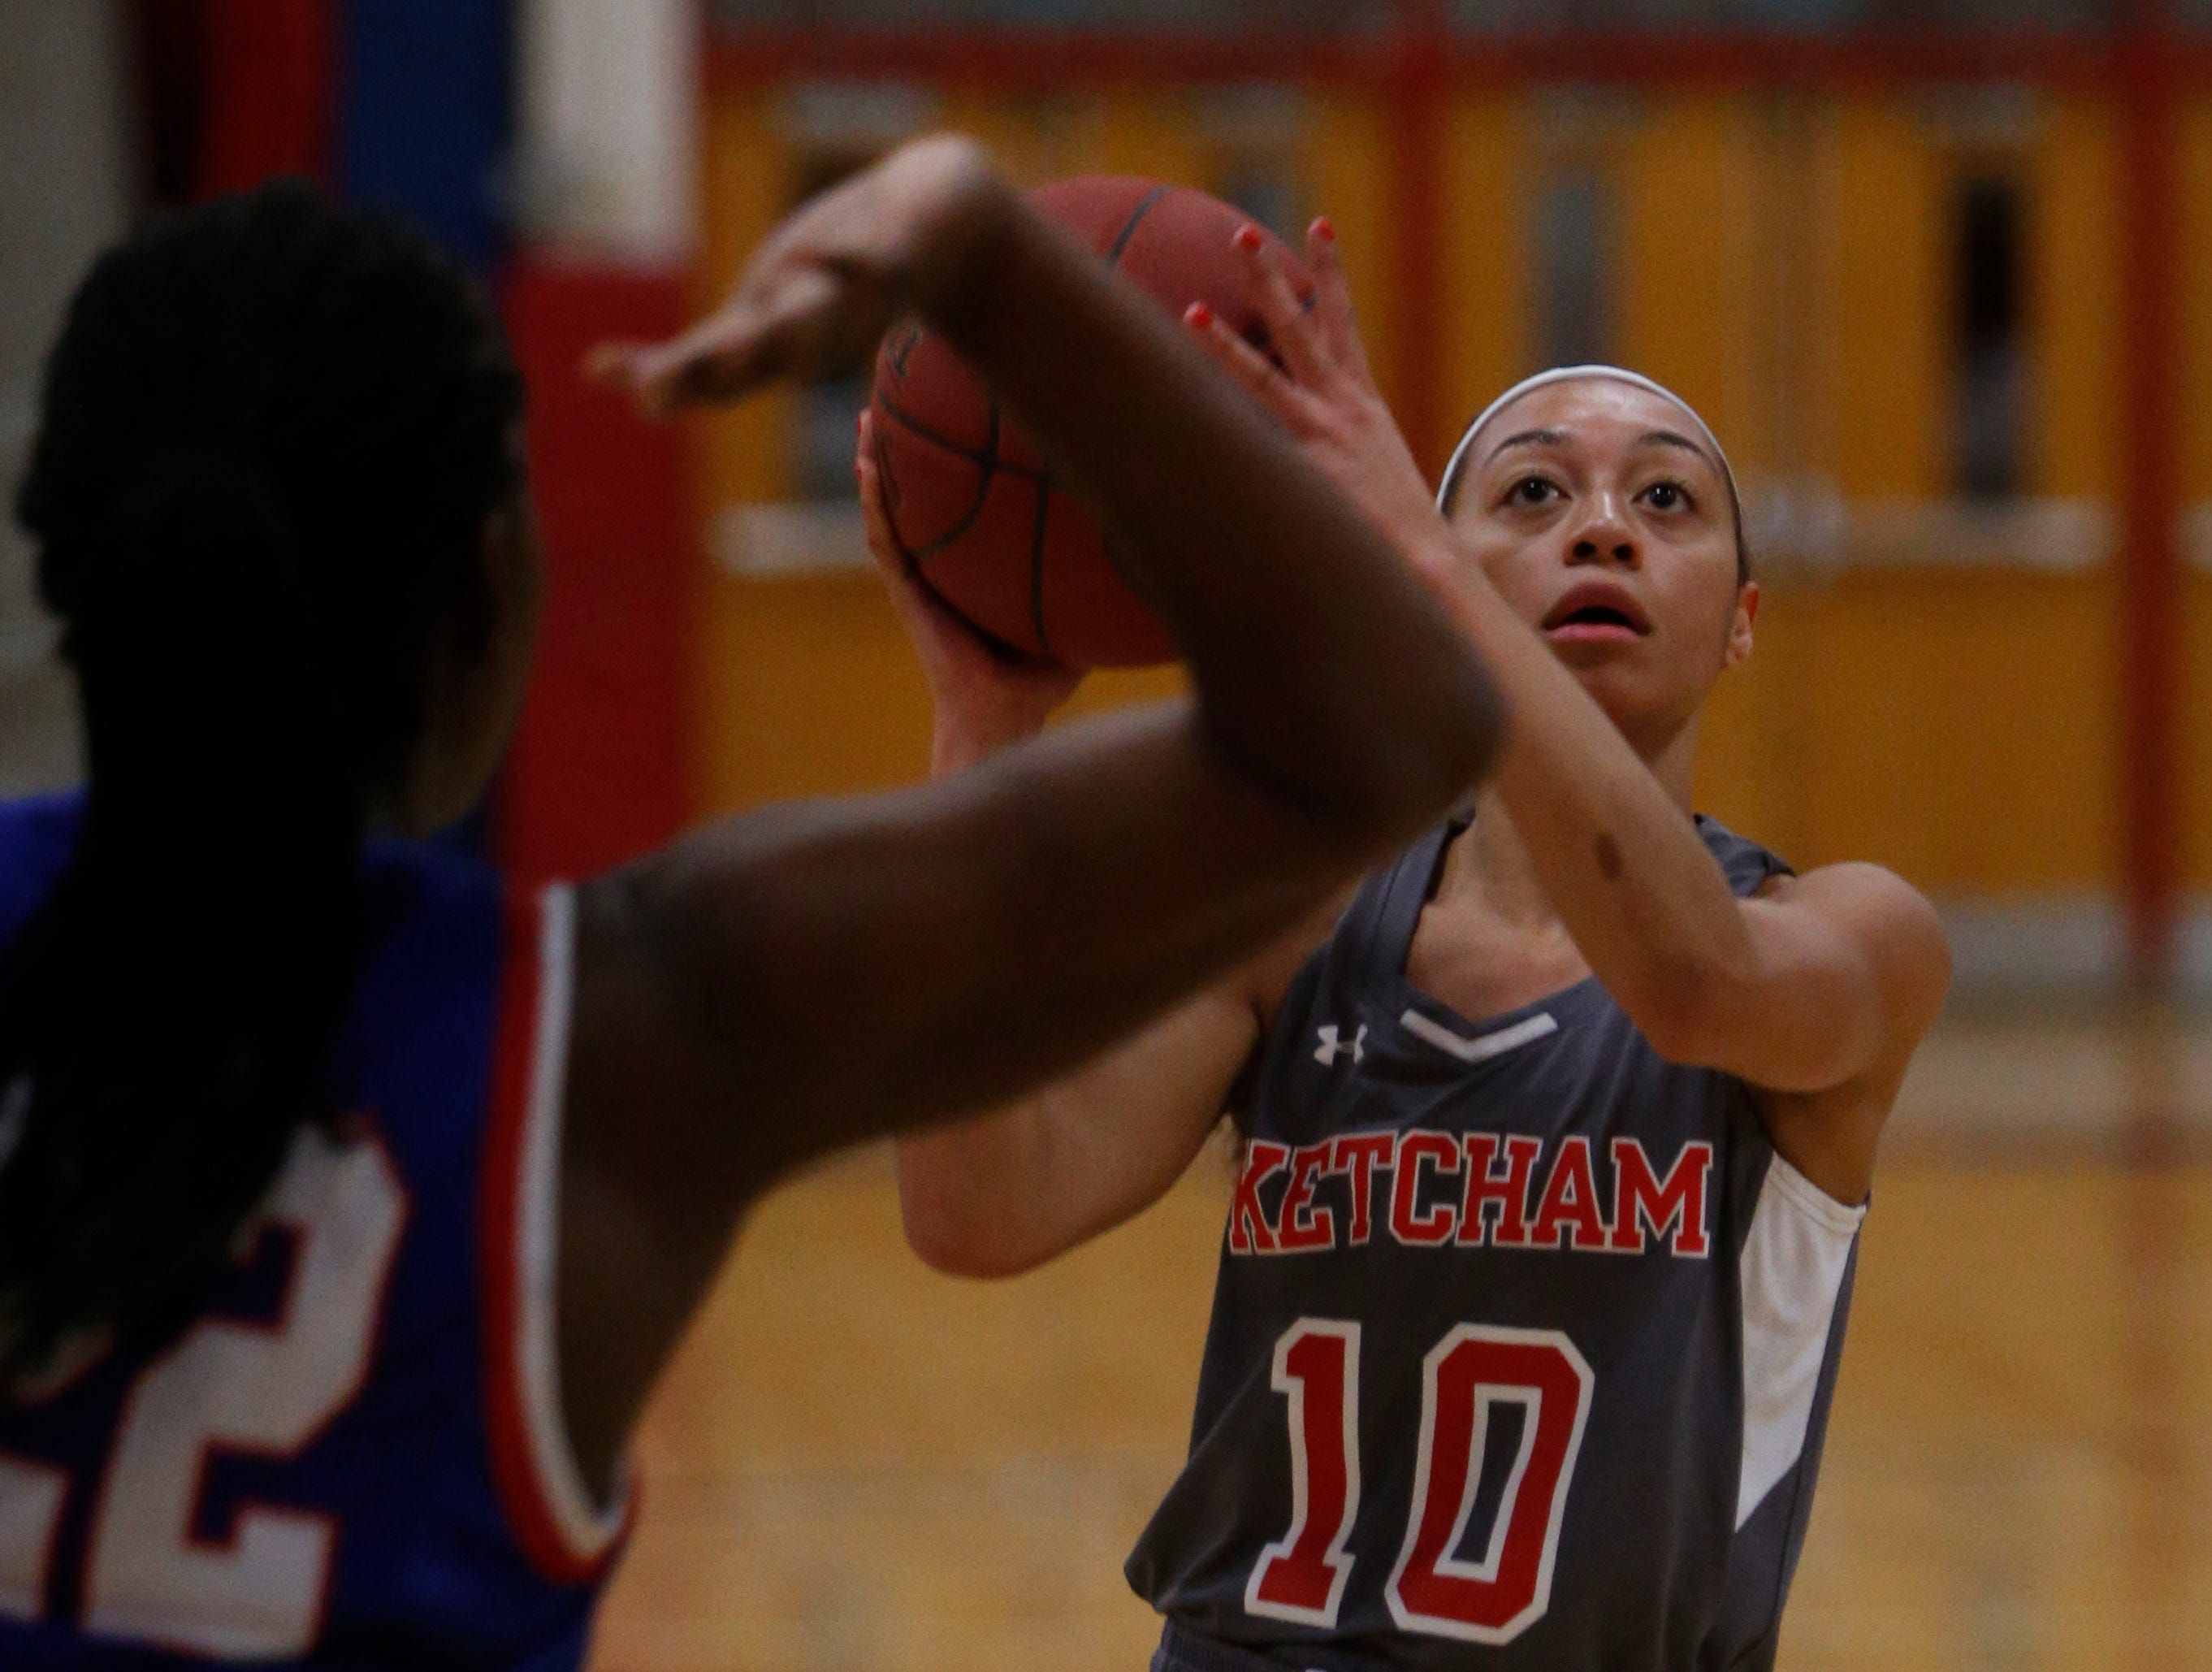 Ketcham's Mya Smith goes for a shot against Carmel's Stephanie Ogbebar during Thursday's game on February 14, 2019.